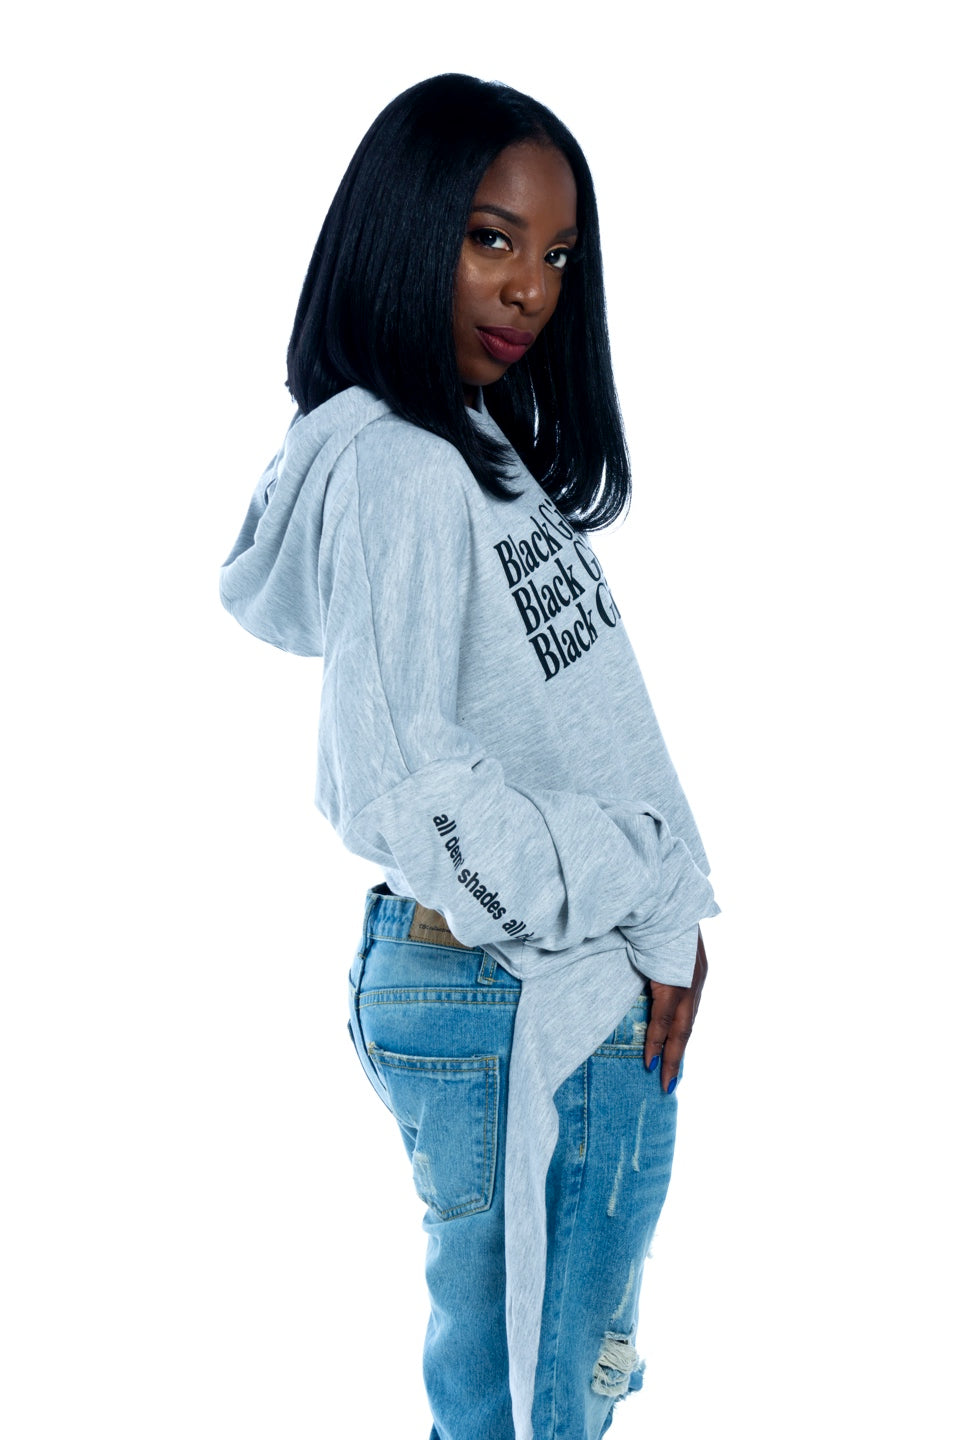 Black Girls Are Lit Sweatshirt - (More Options Available)